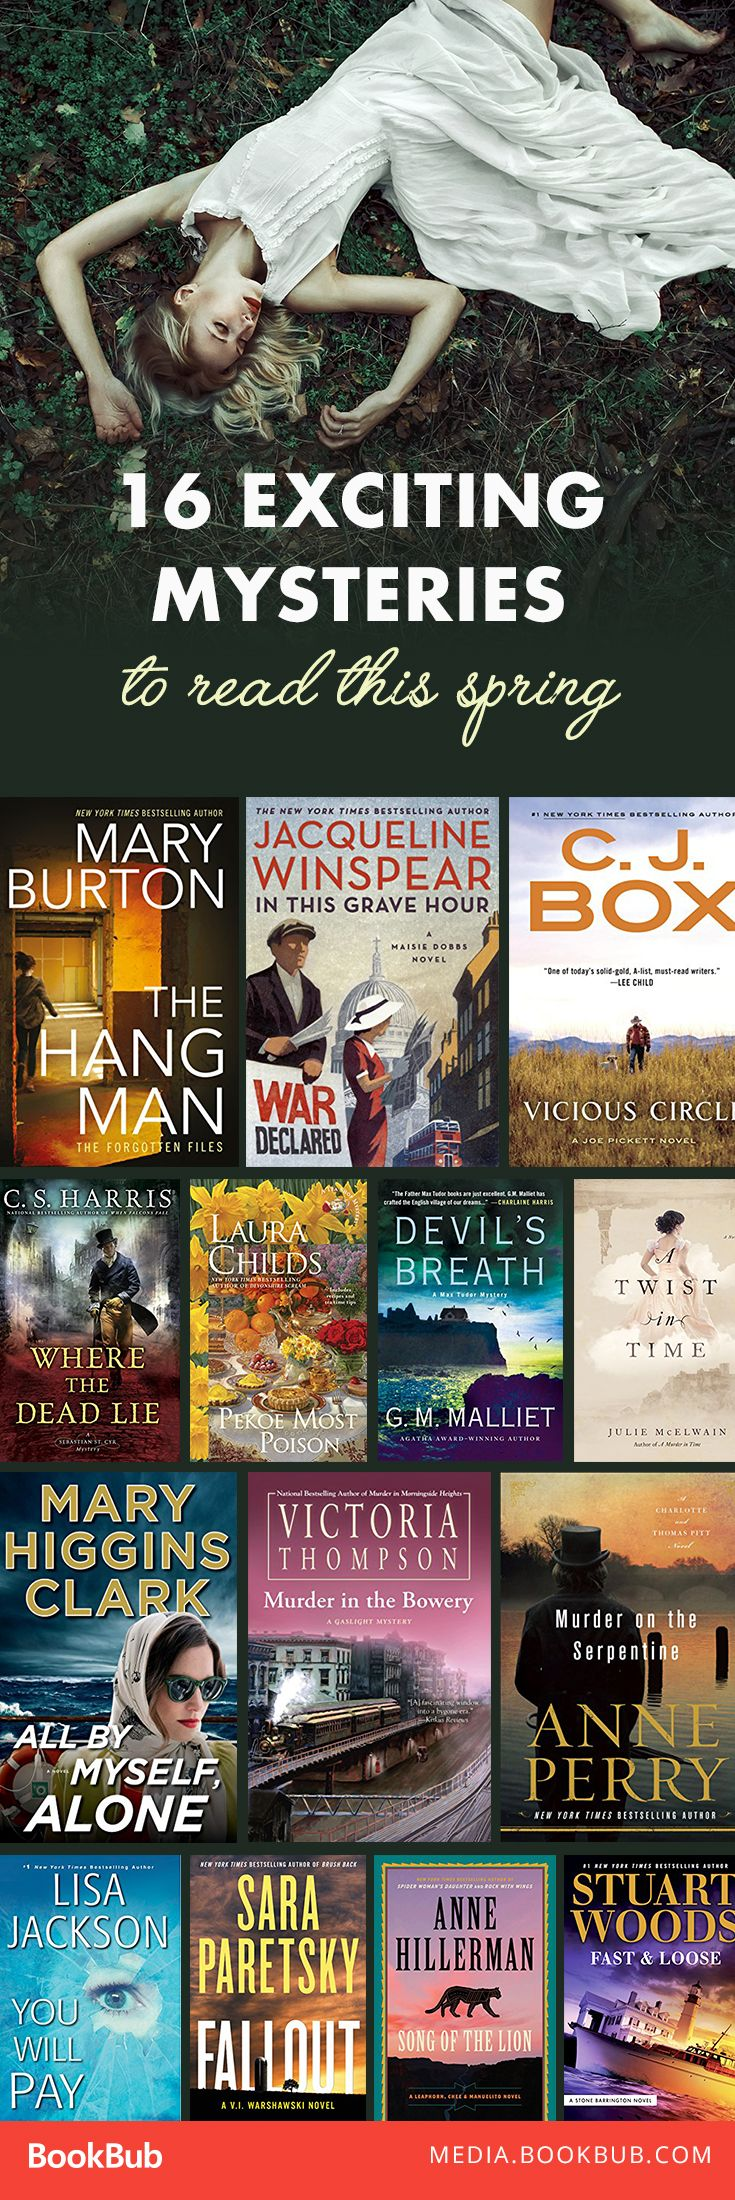 16 mystery books worth reading. Featuring historical mysteries, detective mysteries, and more.